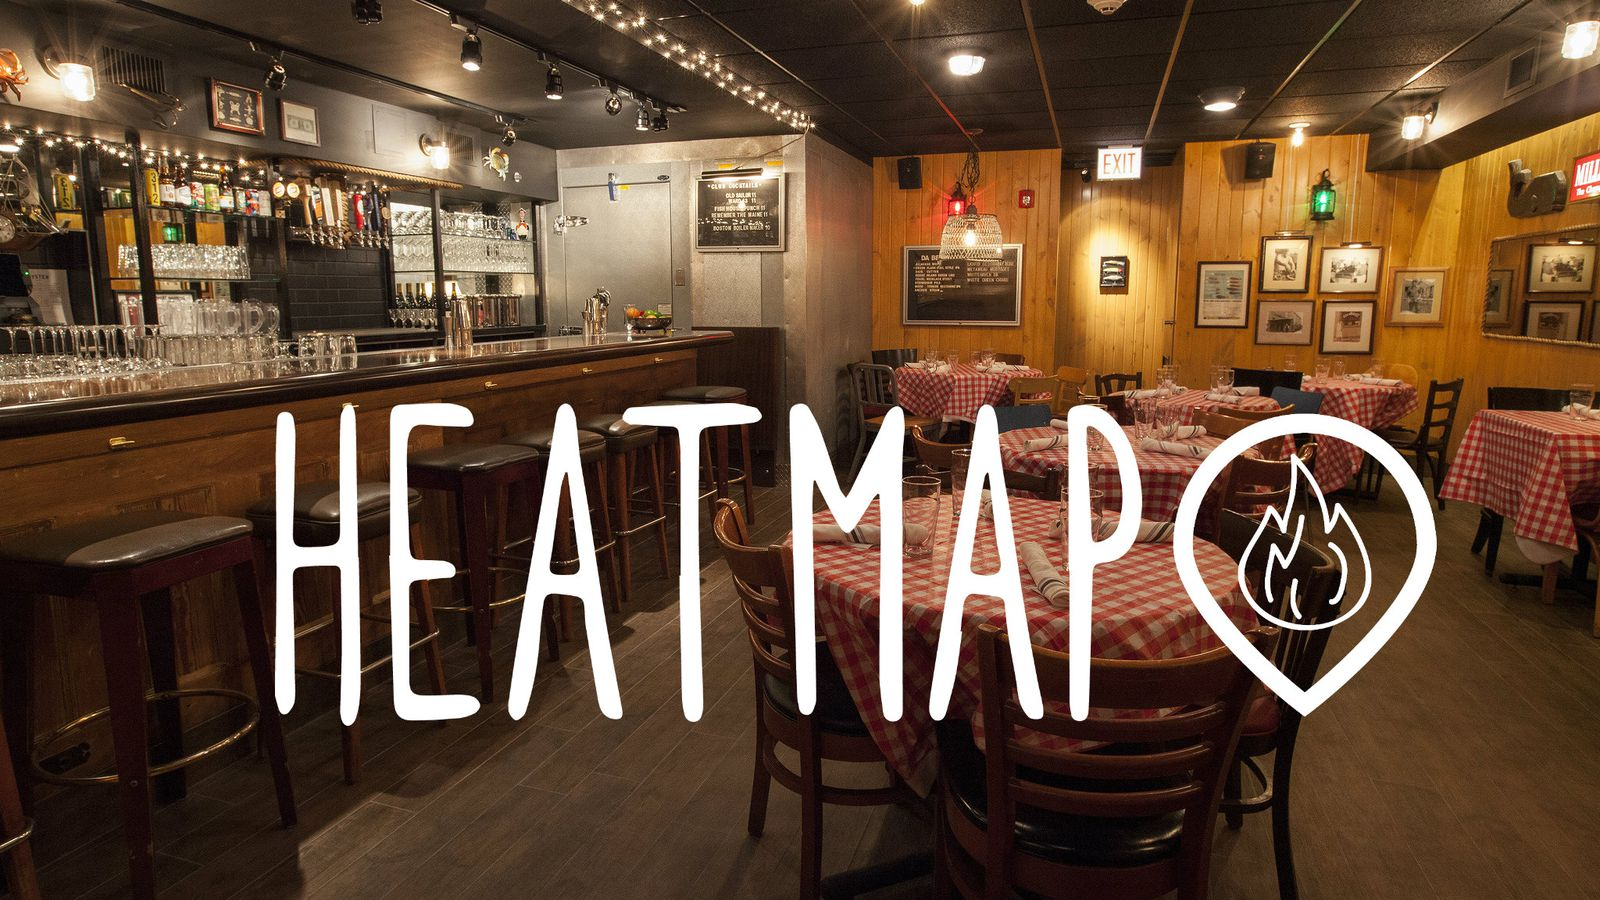 The hottest restaurants in chicago right now january 2016 for Hotel right now in chicago